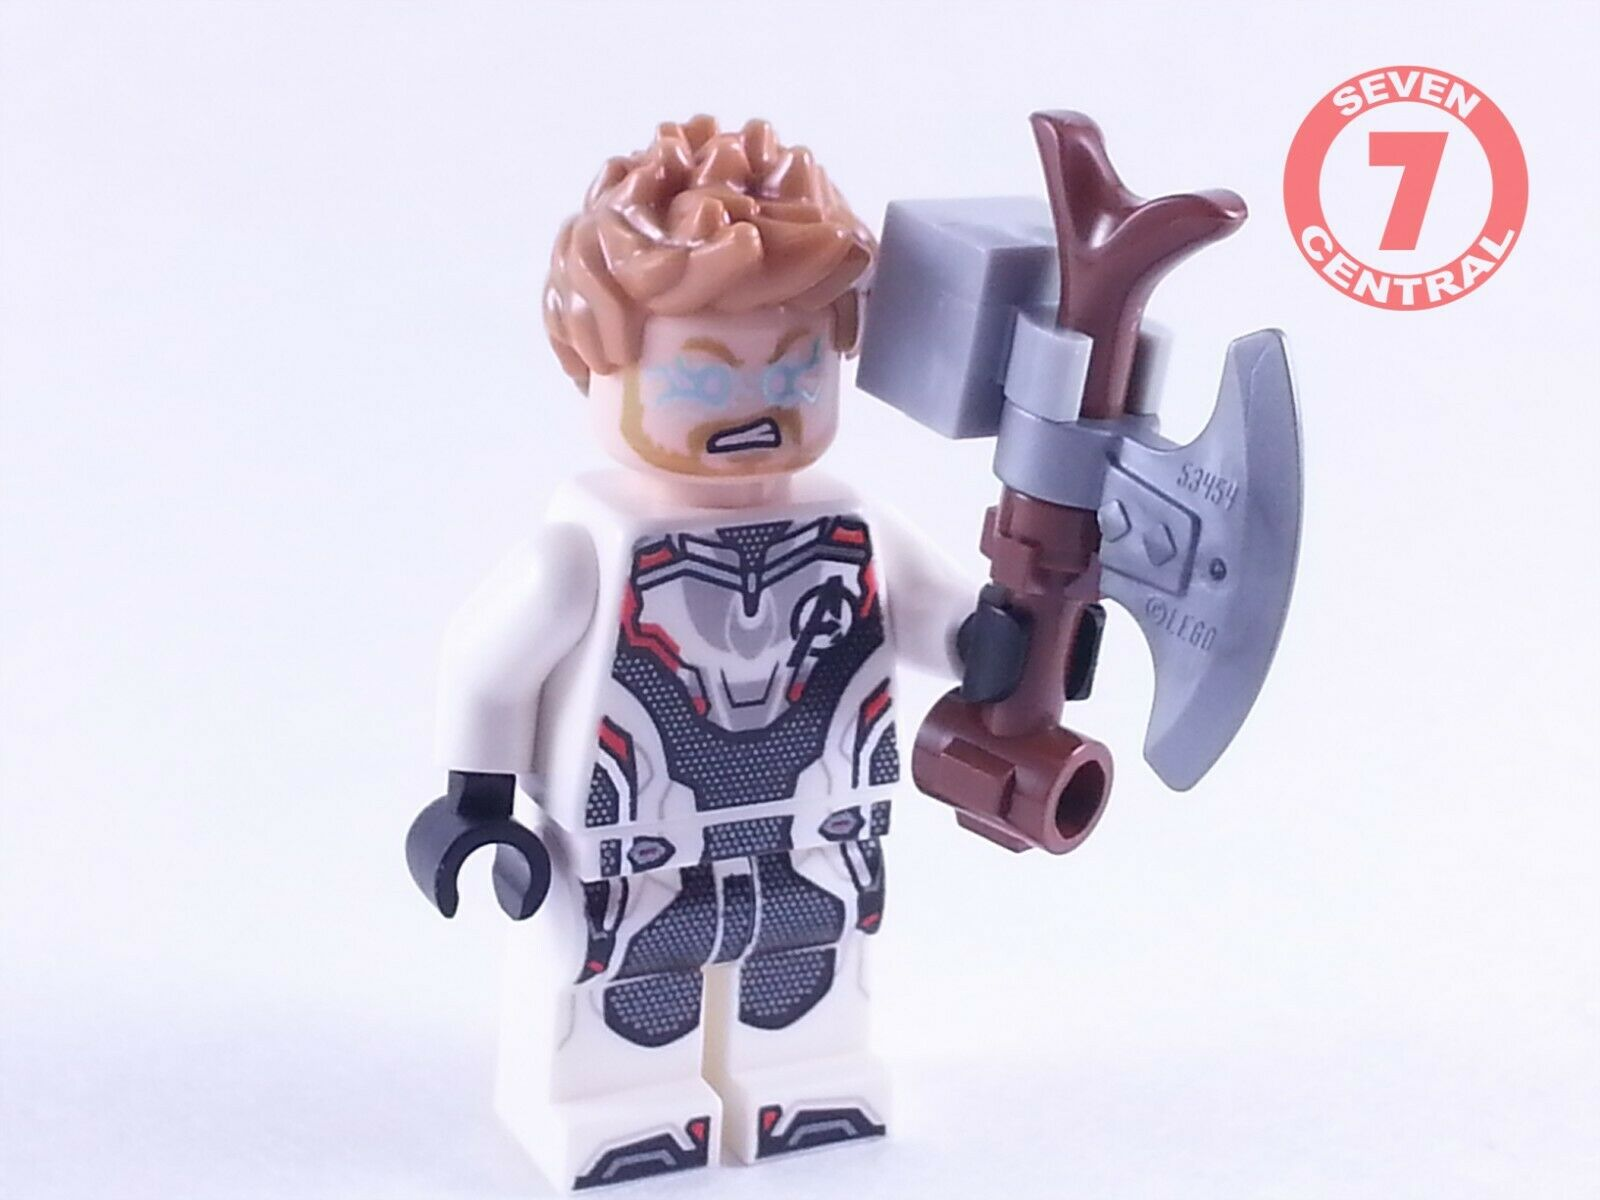 LEGO Marvel Super Heroes Thor MINIFIG from Lego set #76126 Brand New